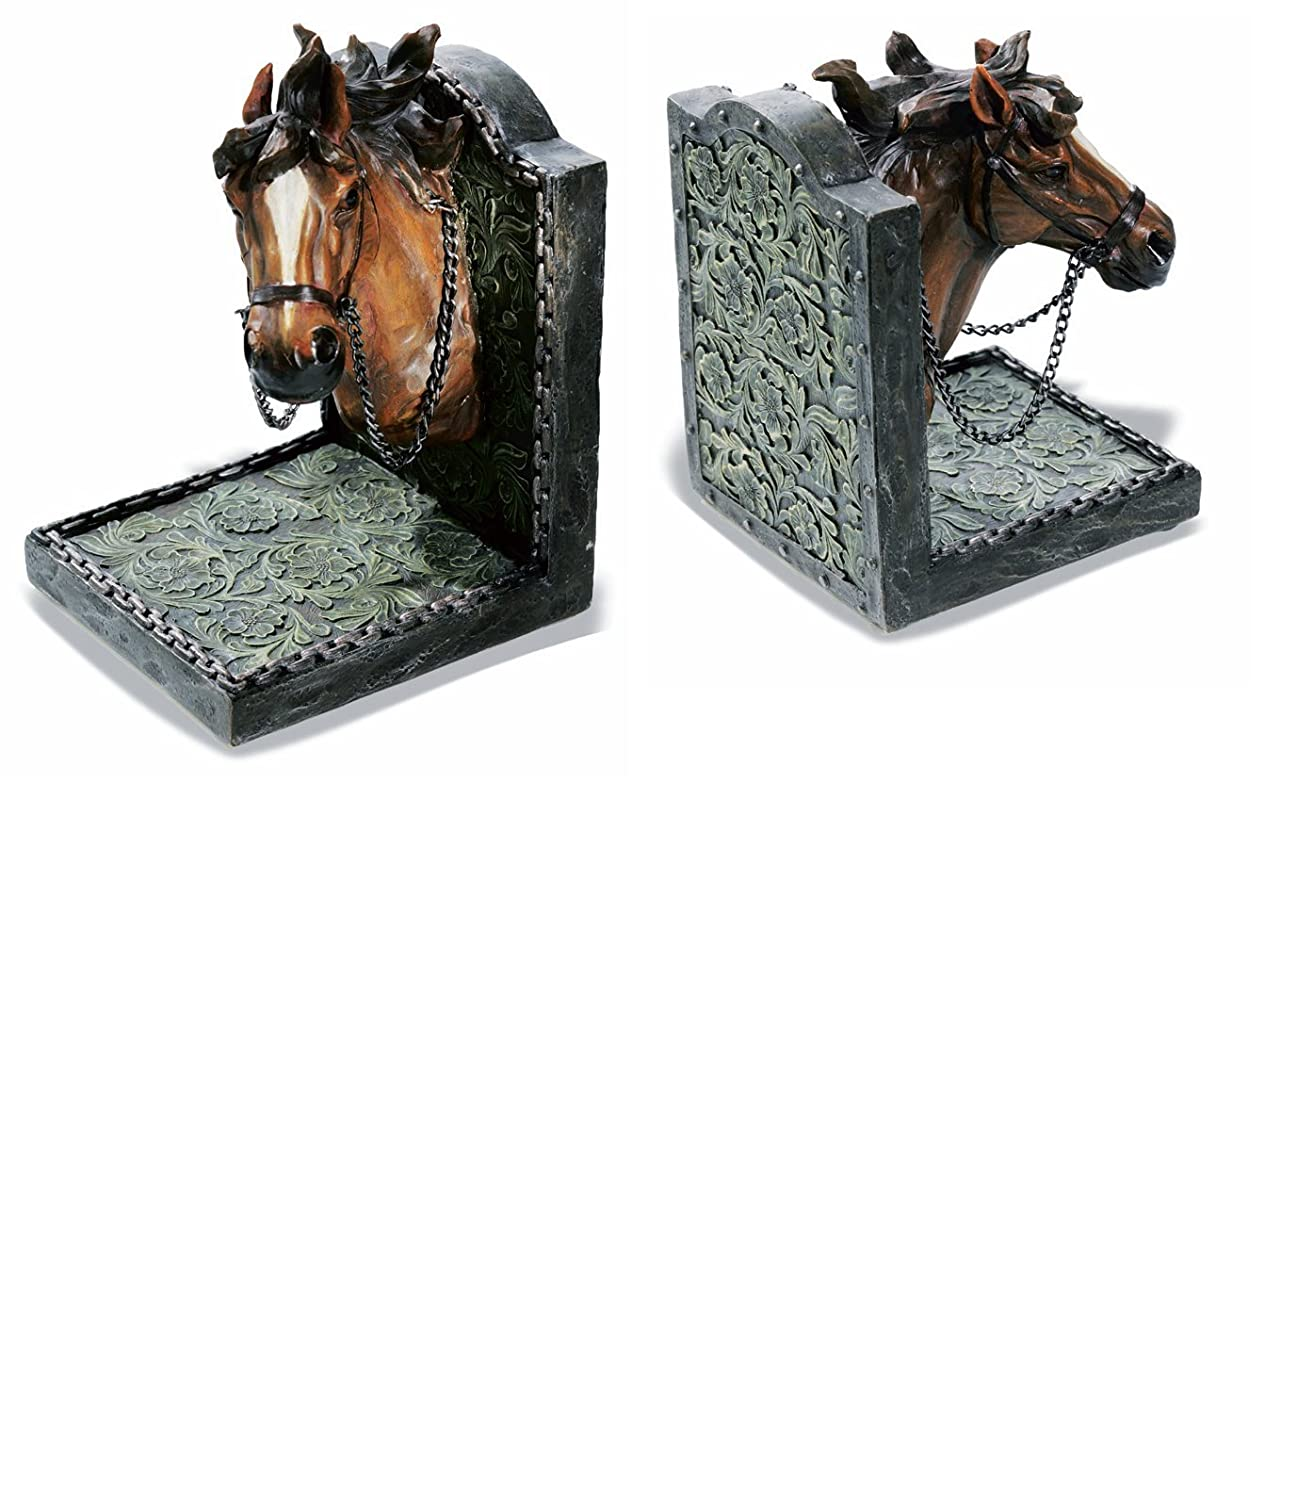 Novelty Horses Bookends Home Office School Desk Book Ends Decorative Bookshelf Display Organizers Equestrian Gift